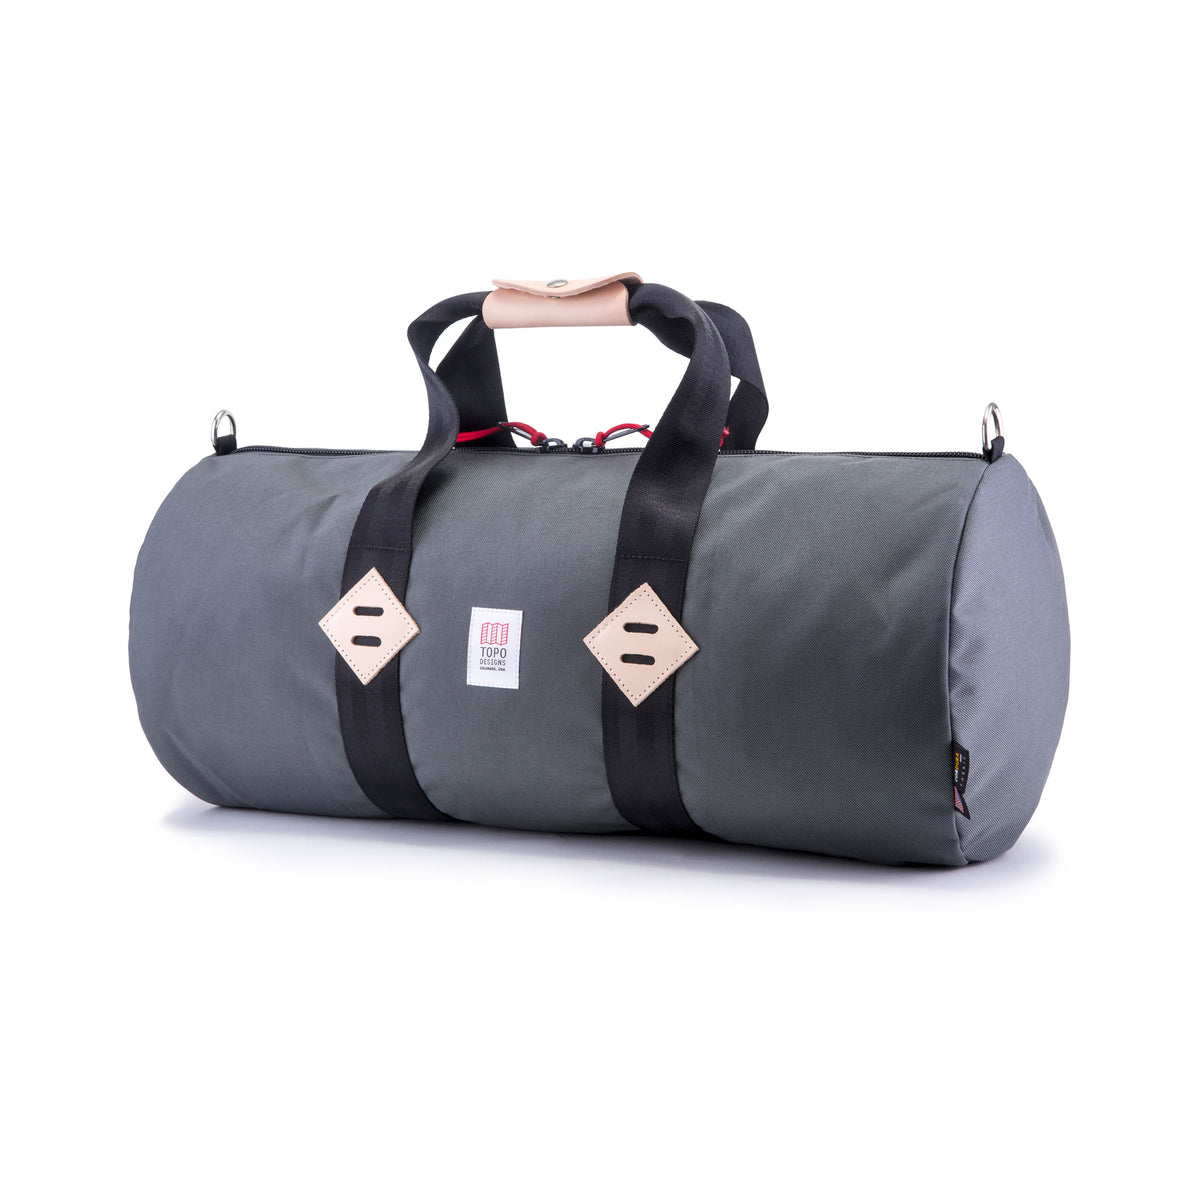 classic duffel topo designs duffels made in colorado usa